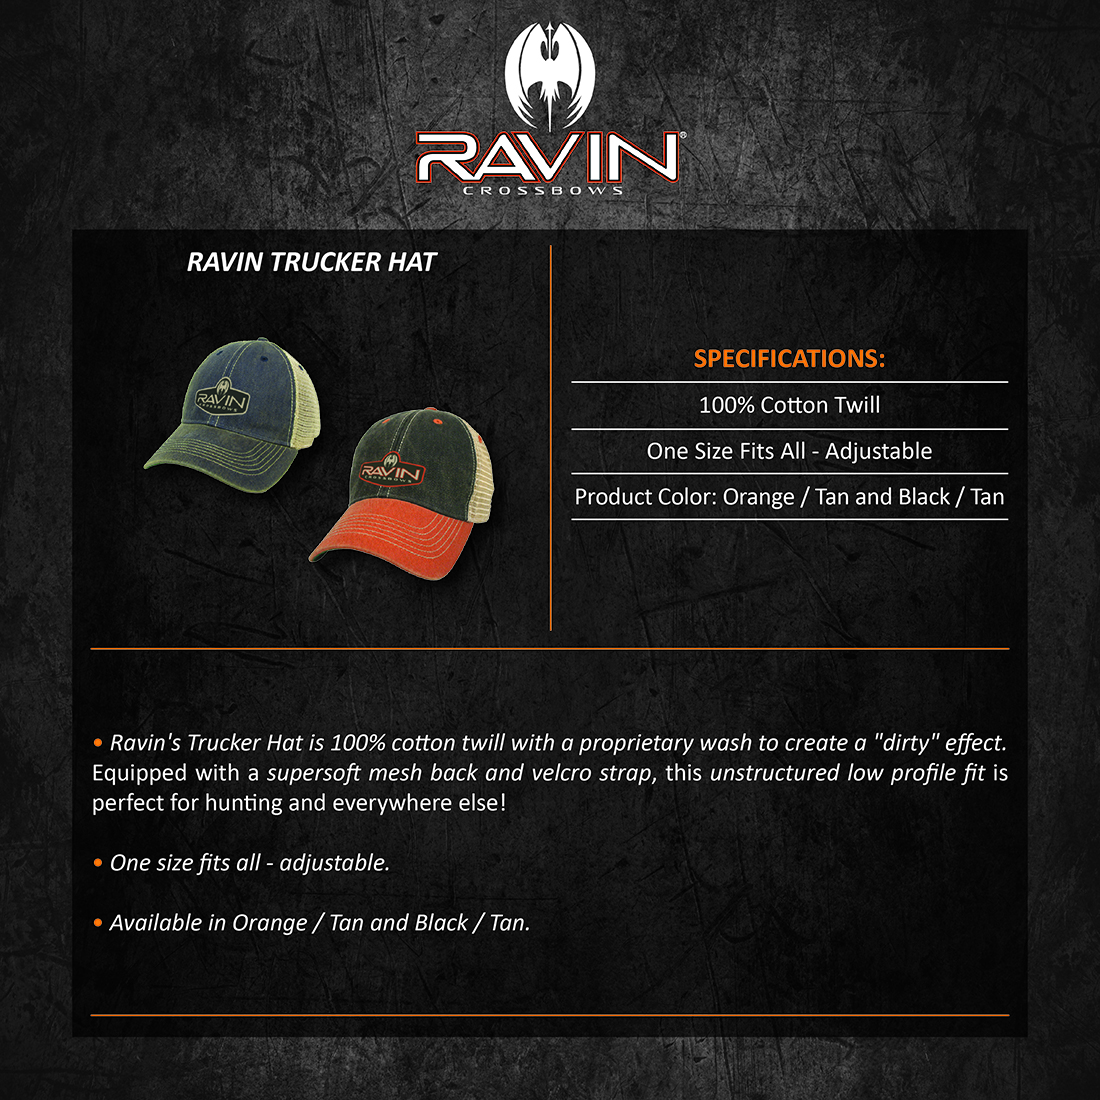 Ravin_Trucker_Hat_Product_Description